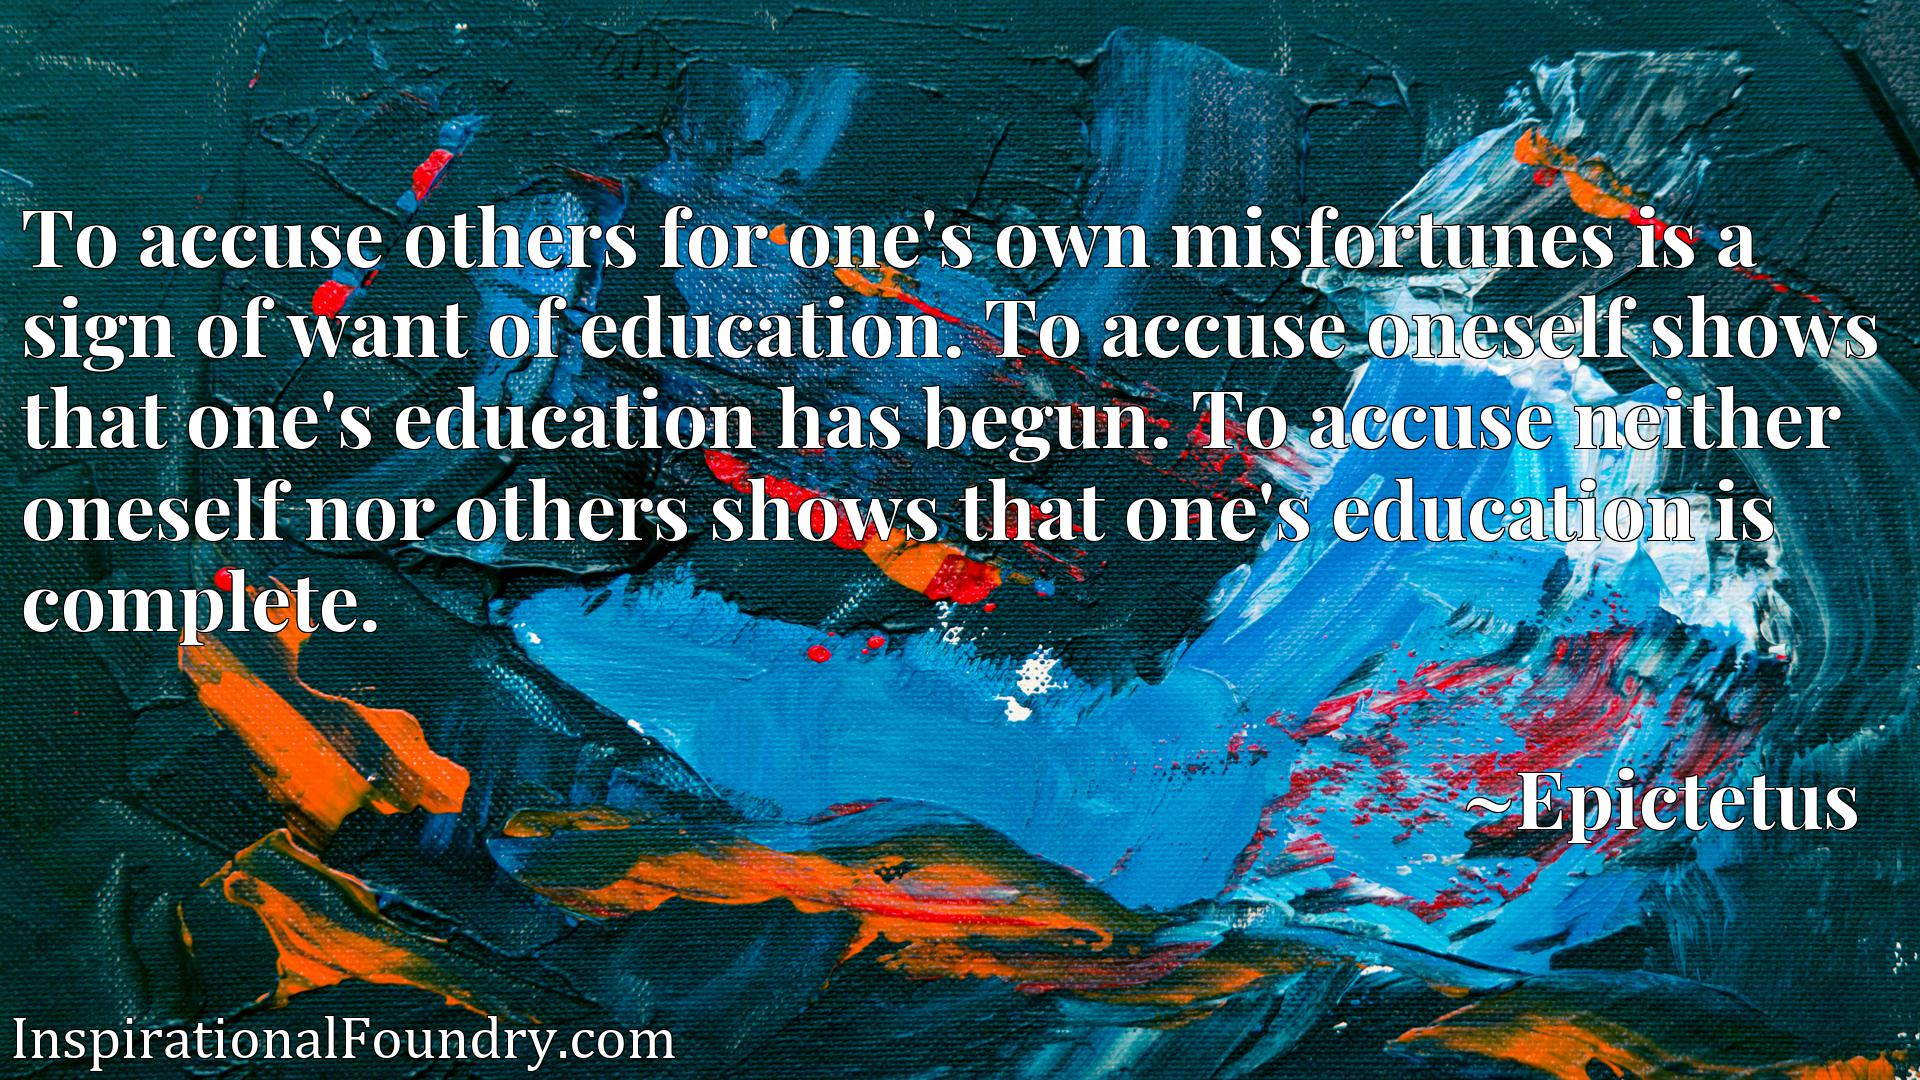 To accuse others for one's own misfortunes is a sign of want of education. To accuse oneself shows that one's education has begun. To accuse neither oneself nor others shows that one's education is complete.